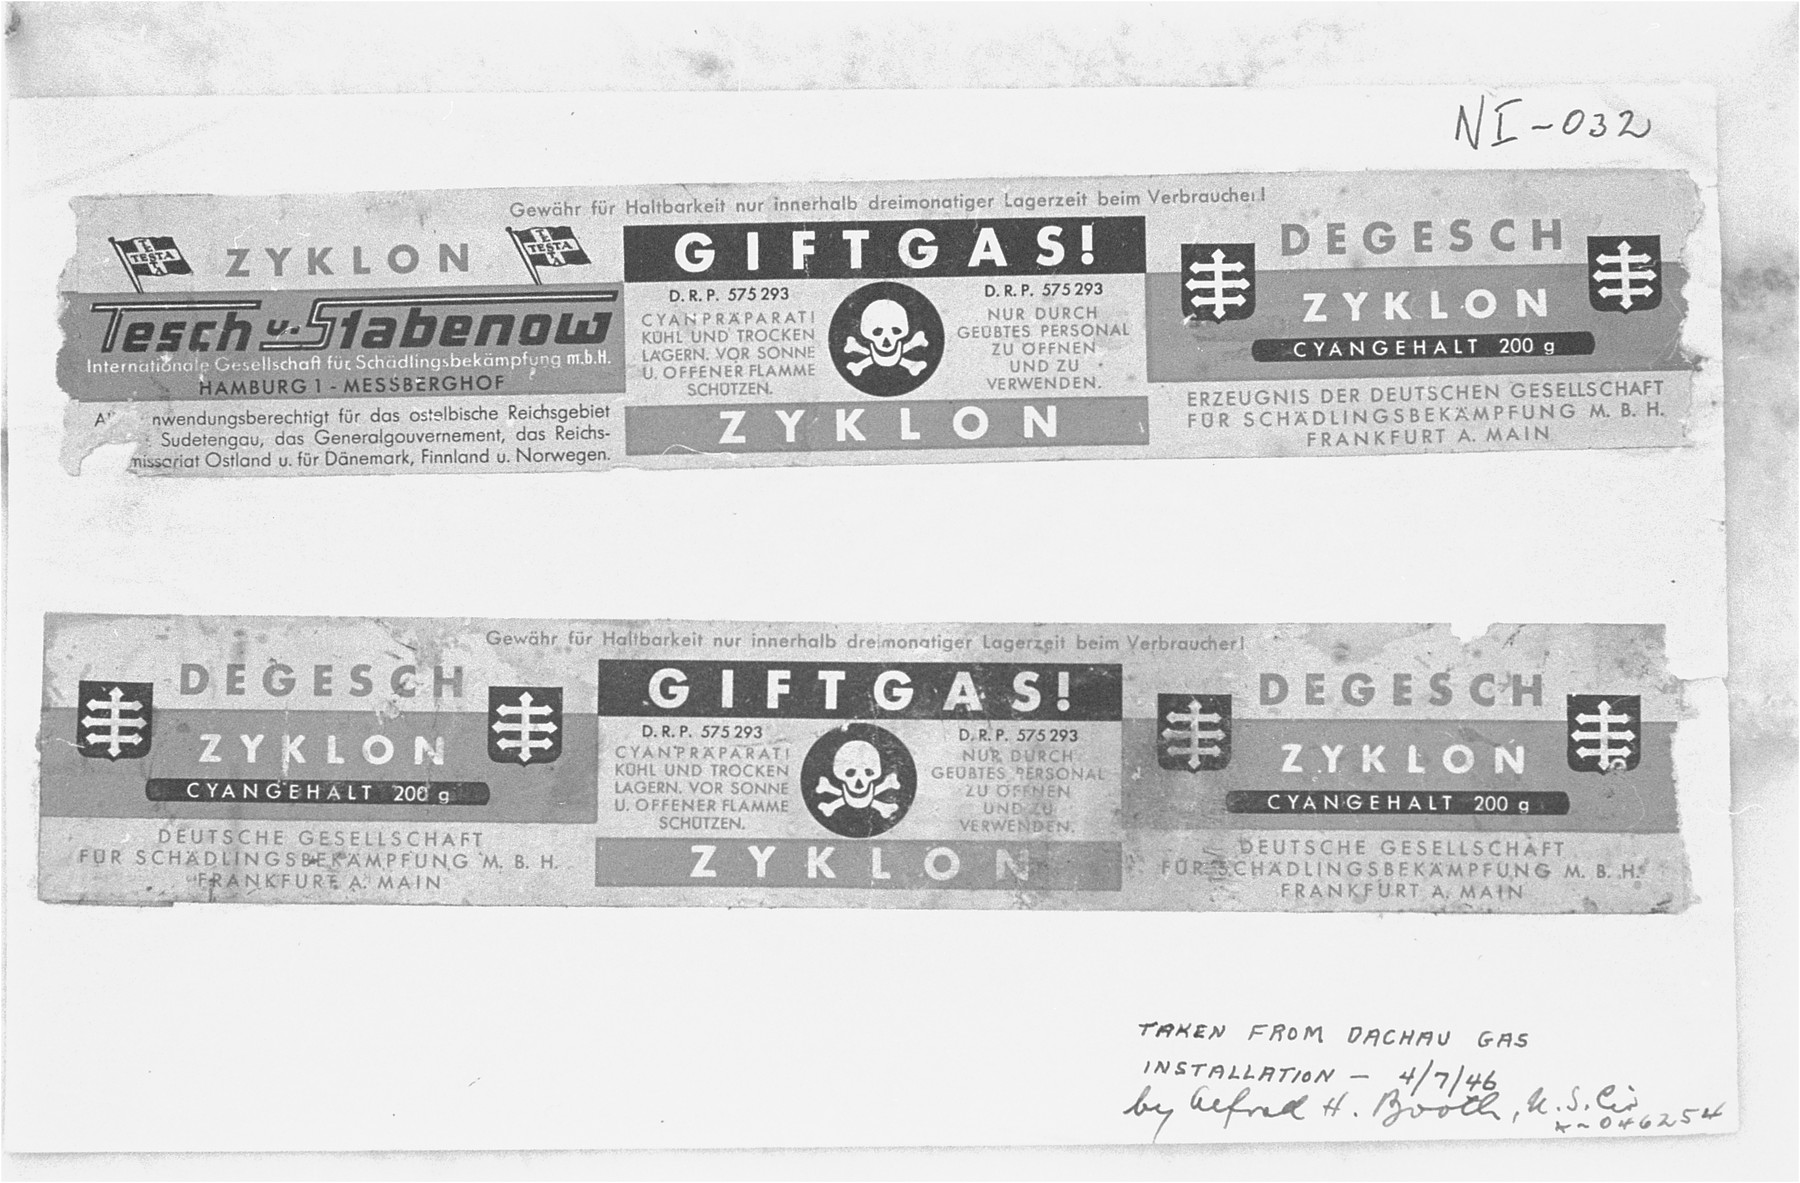 """Labels taken from canisters of Zyklon B from the Dachau Gas Installation.     The first and third panels contain the German Pest Control Company emblem and the brand name Zyklon.  The center panel reads """"Poison Gas!""""   """"Cyanide Preparation!  [skull and crossbones] to be opened and used only by trained personnel.""""  The labels were used as evidence at the International Military Tribunal trial of war criminals at Nuremberg."""